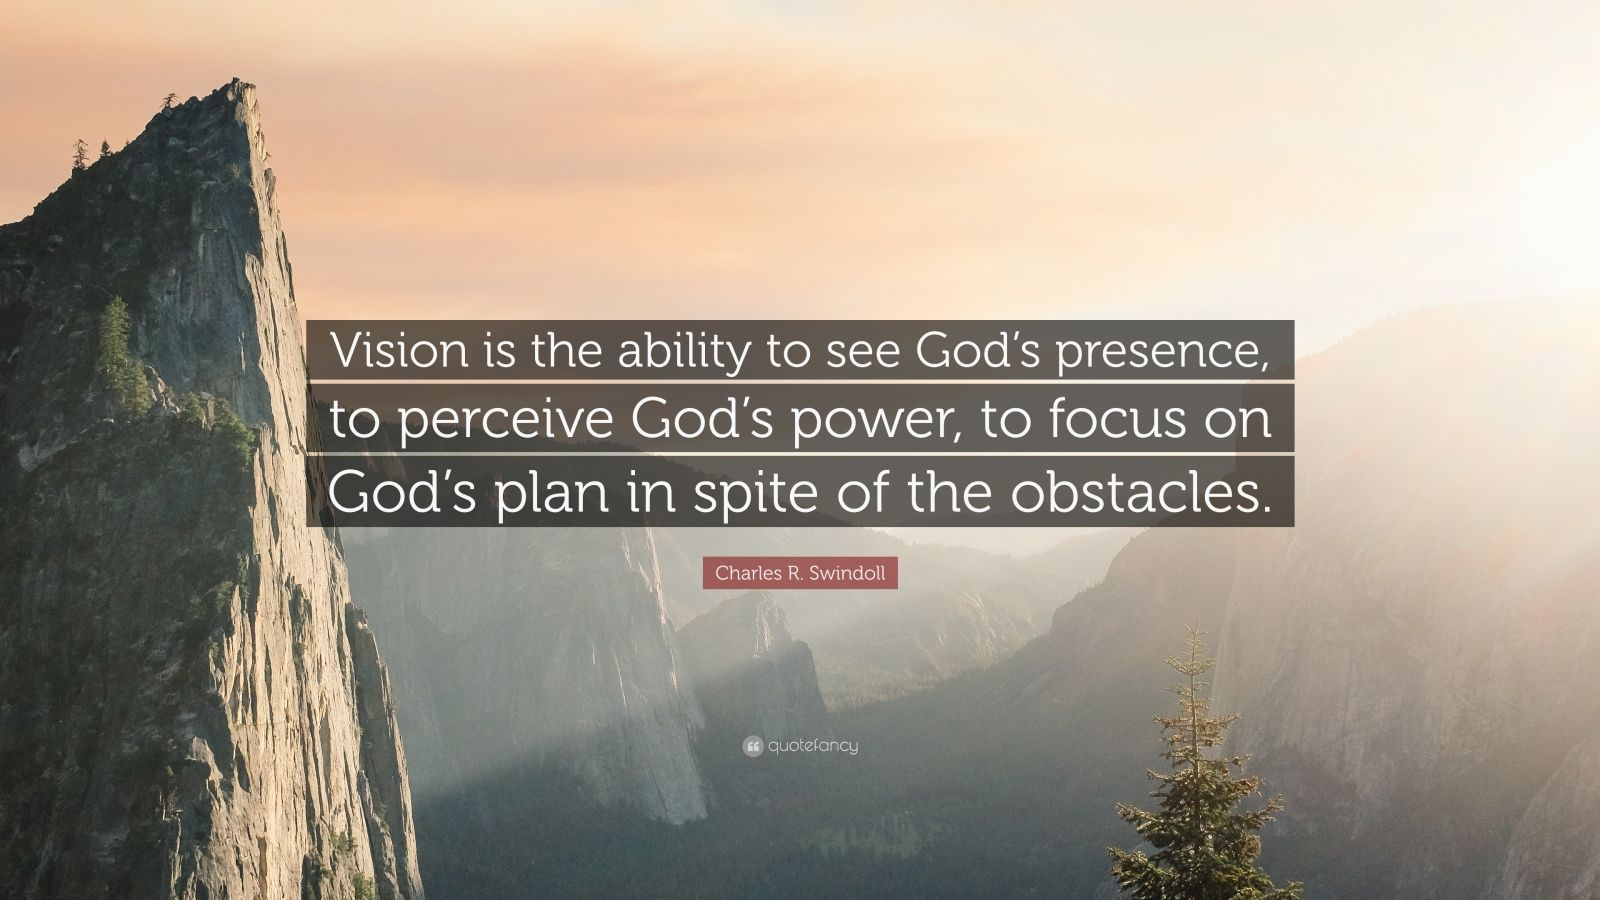 """Charles R. Swindoll Quote: """"Vision is the ability to see God's presence, to perceive God's power, to focus on God's plan in spite of the obstacles."""""""